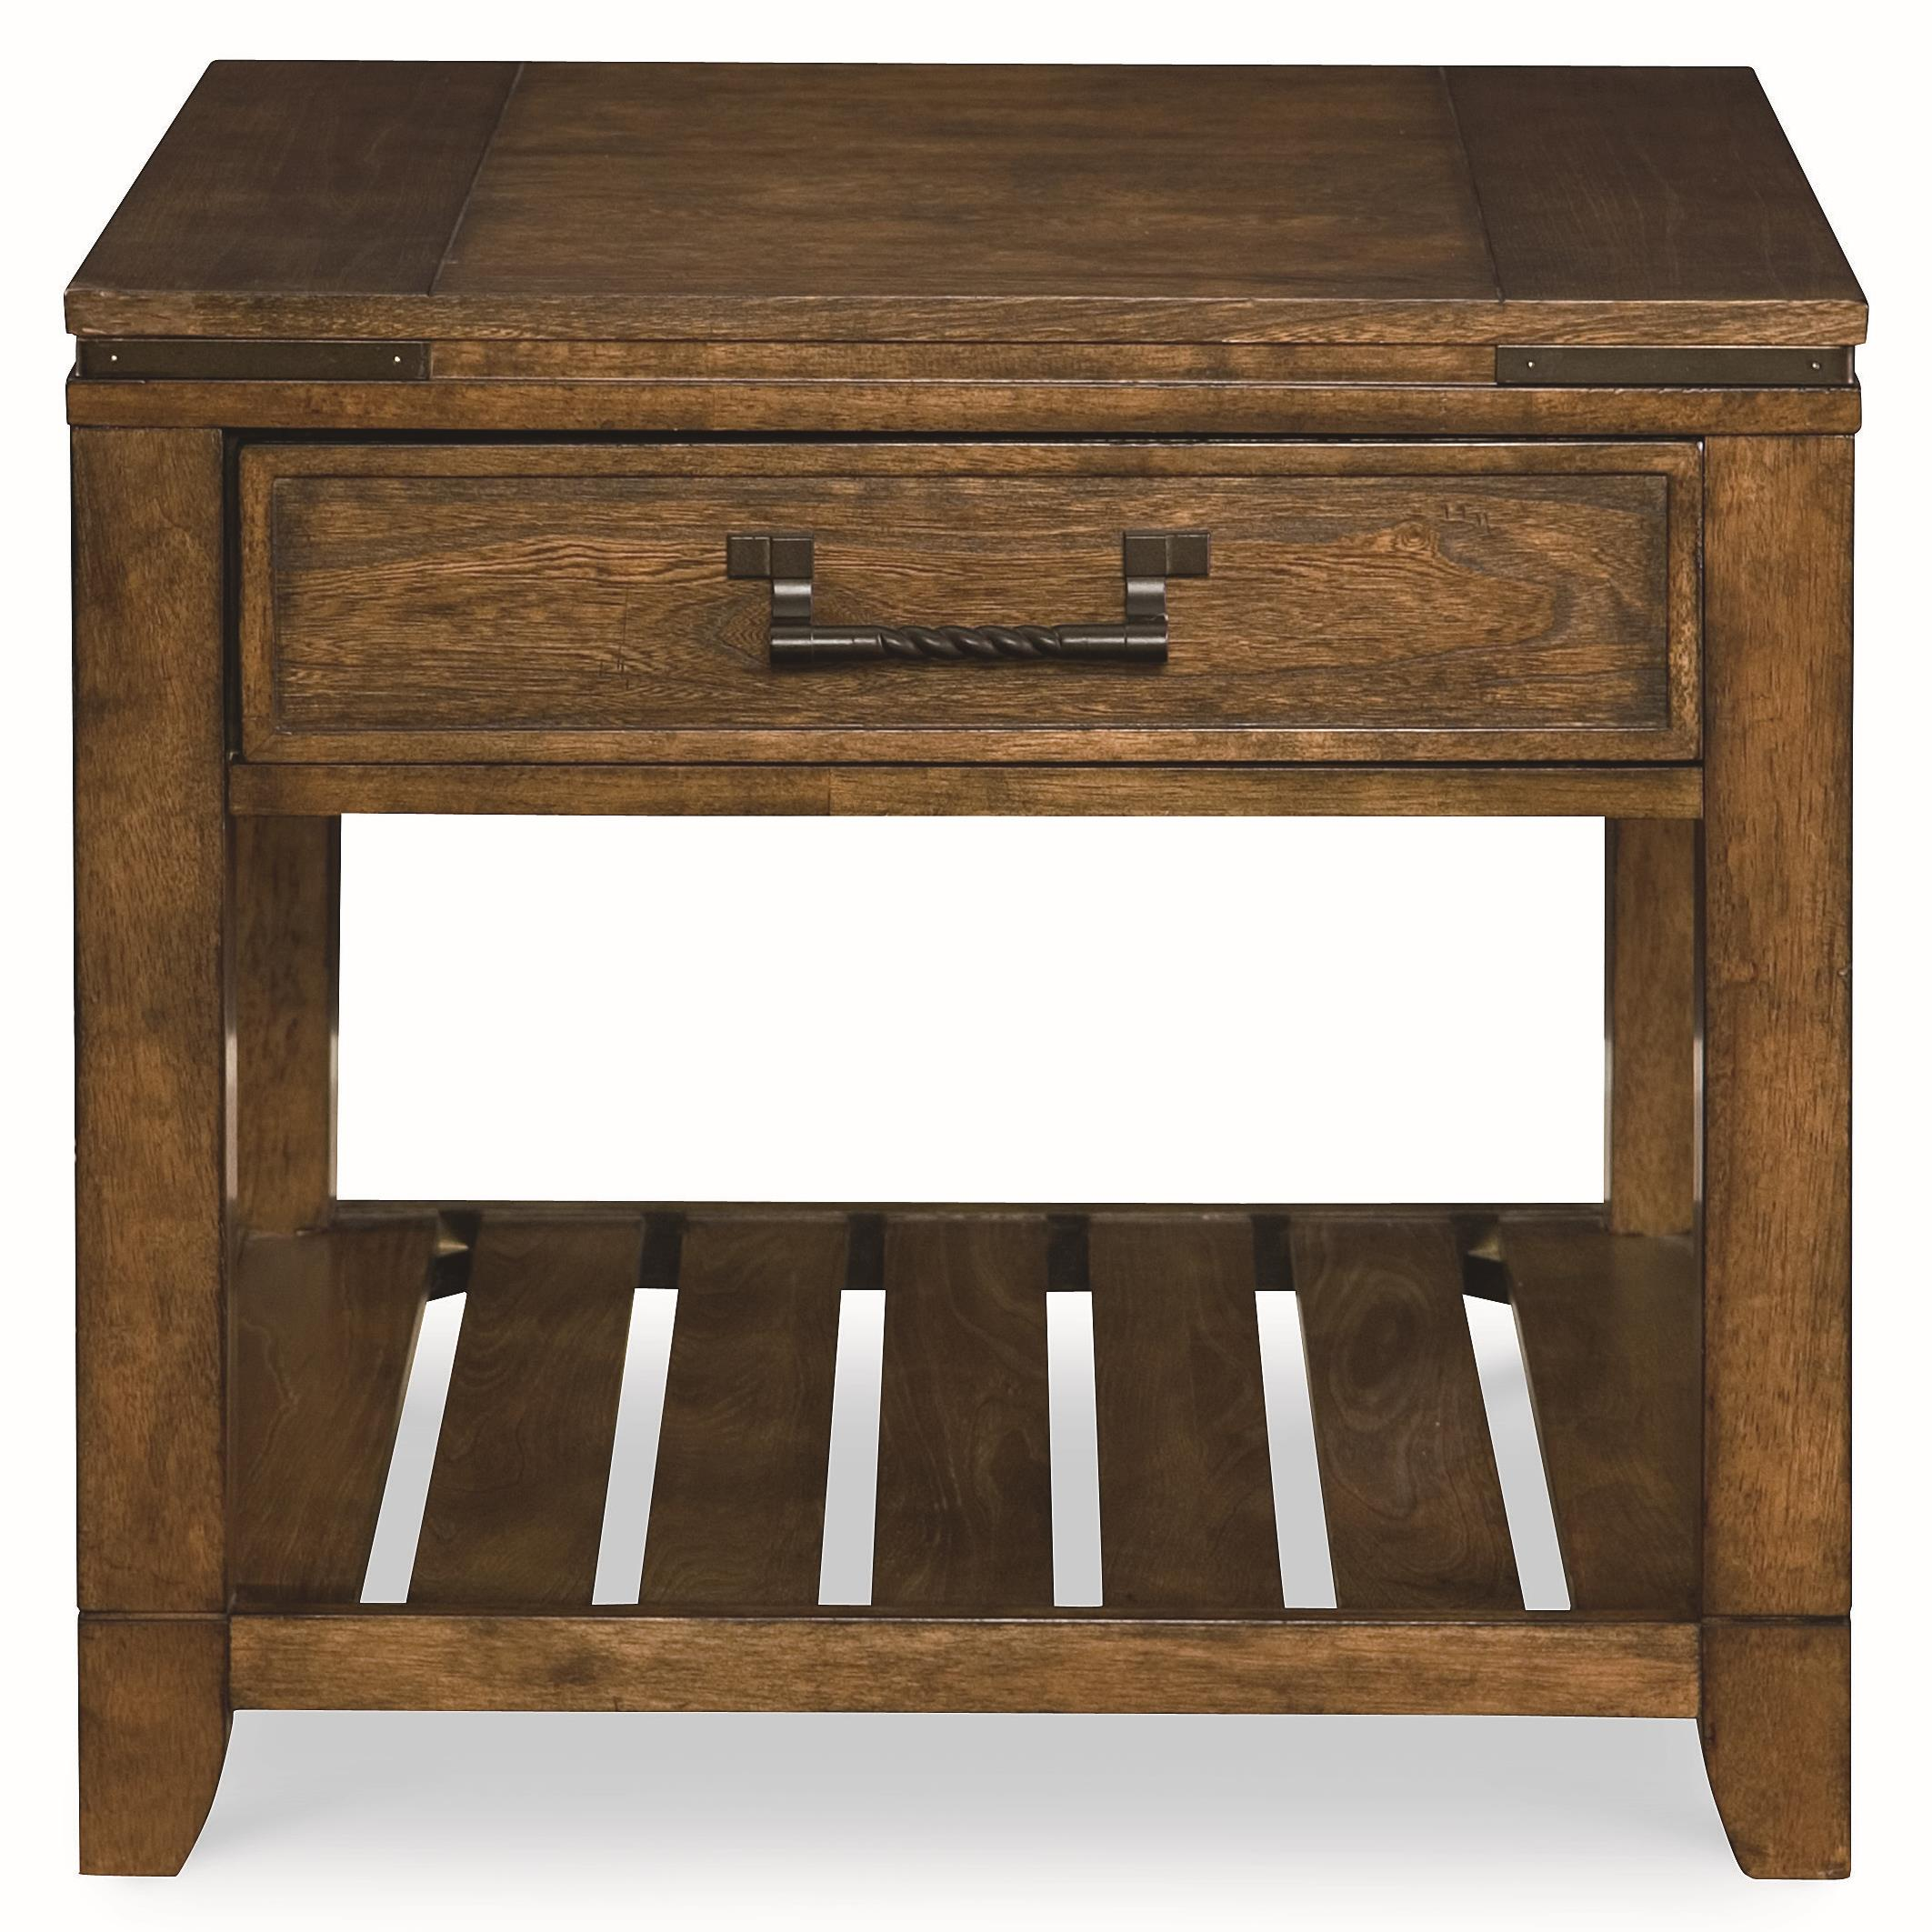 Legacy Classic River Run Rectangular End Table - Item Number: 4740-505